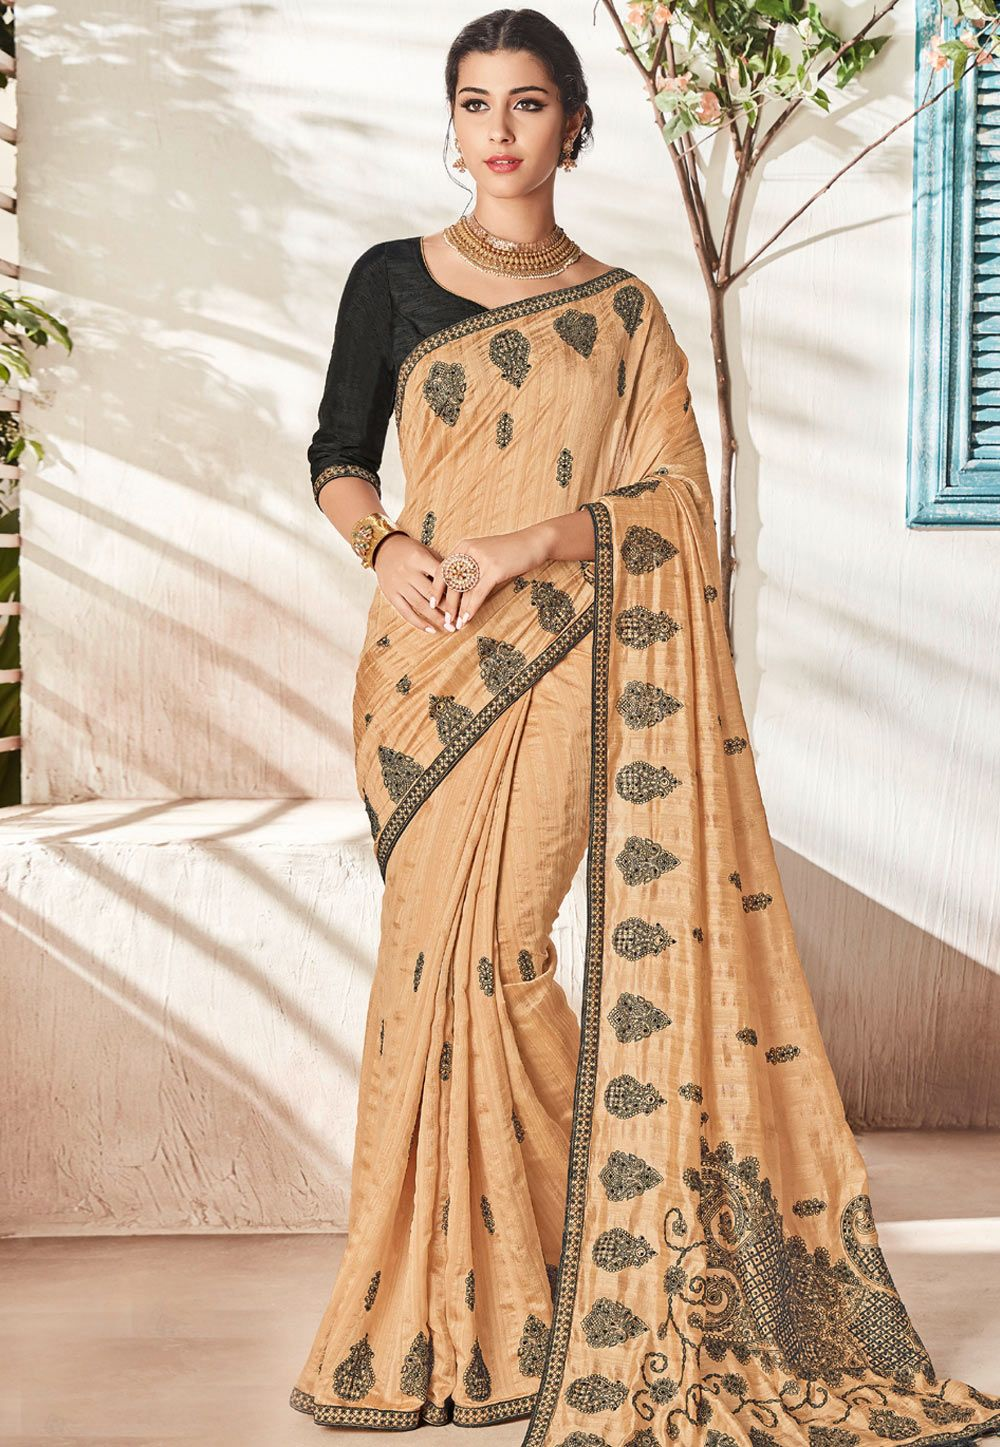 baecc4fb43 Buy Beige Silk Saree With Blouse 163474 with blouse online at lowest price  from vast collection of sarees at Indianclothstore.com.